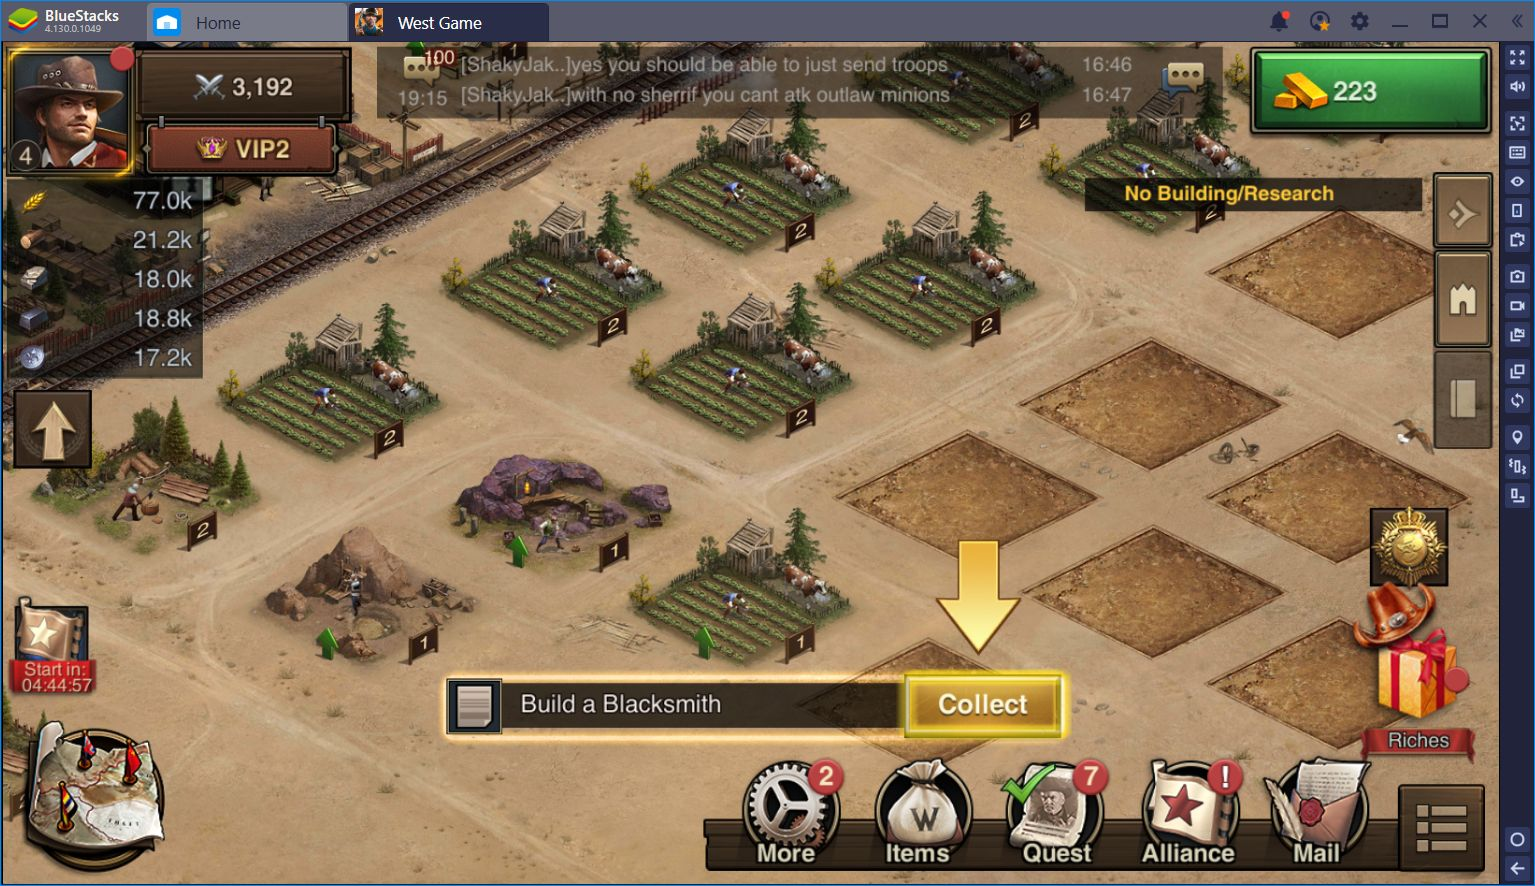 BlueStacks Anleitung für West Game: Keymapping Domination